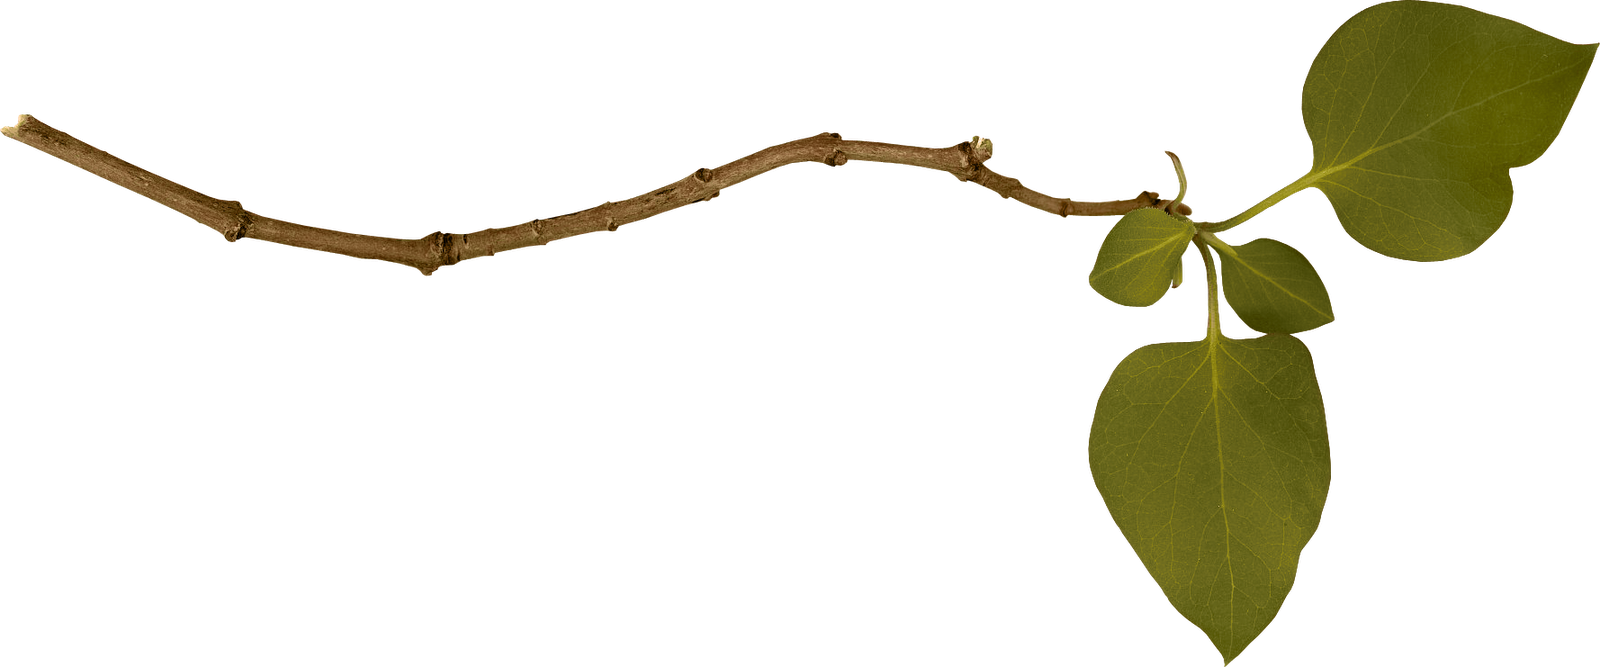 Branch PNG Image